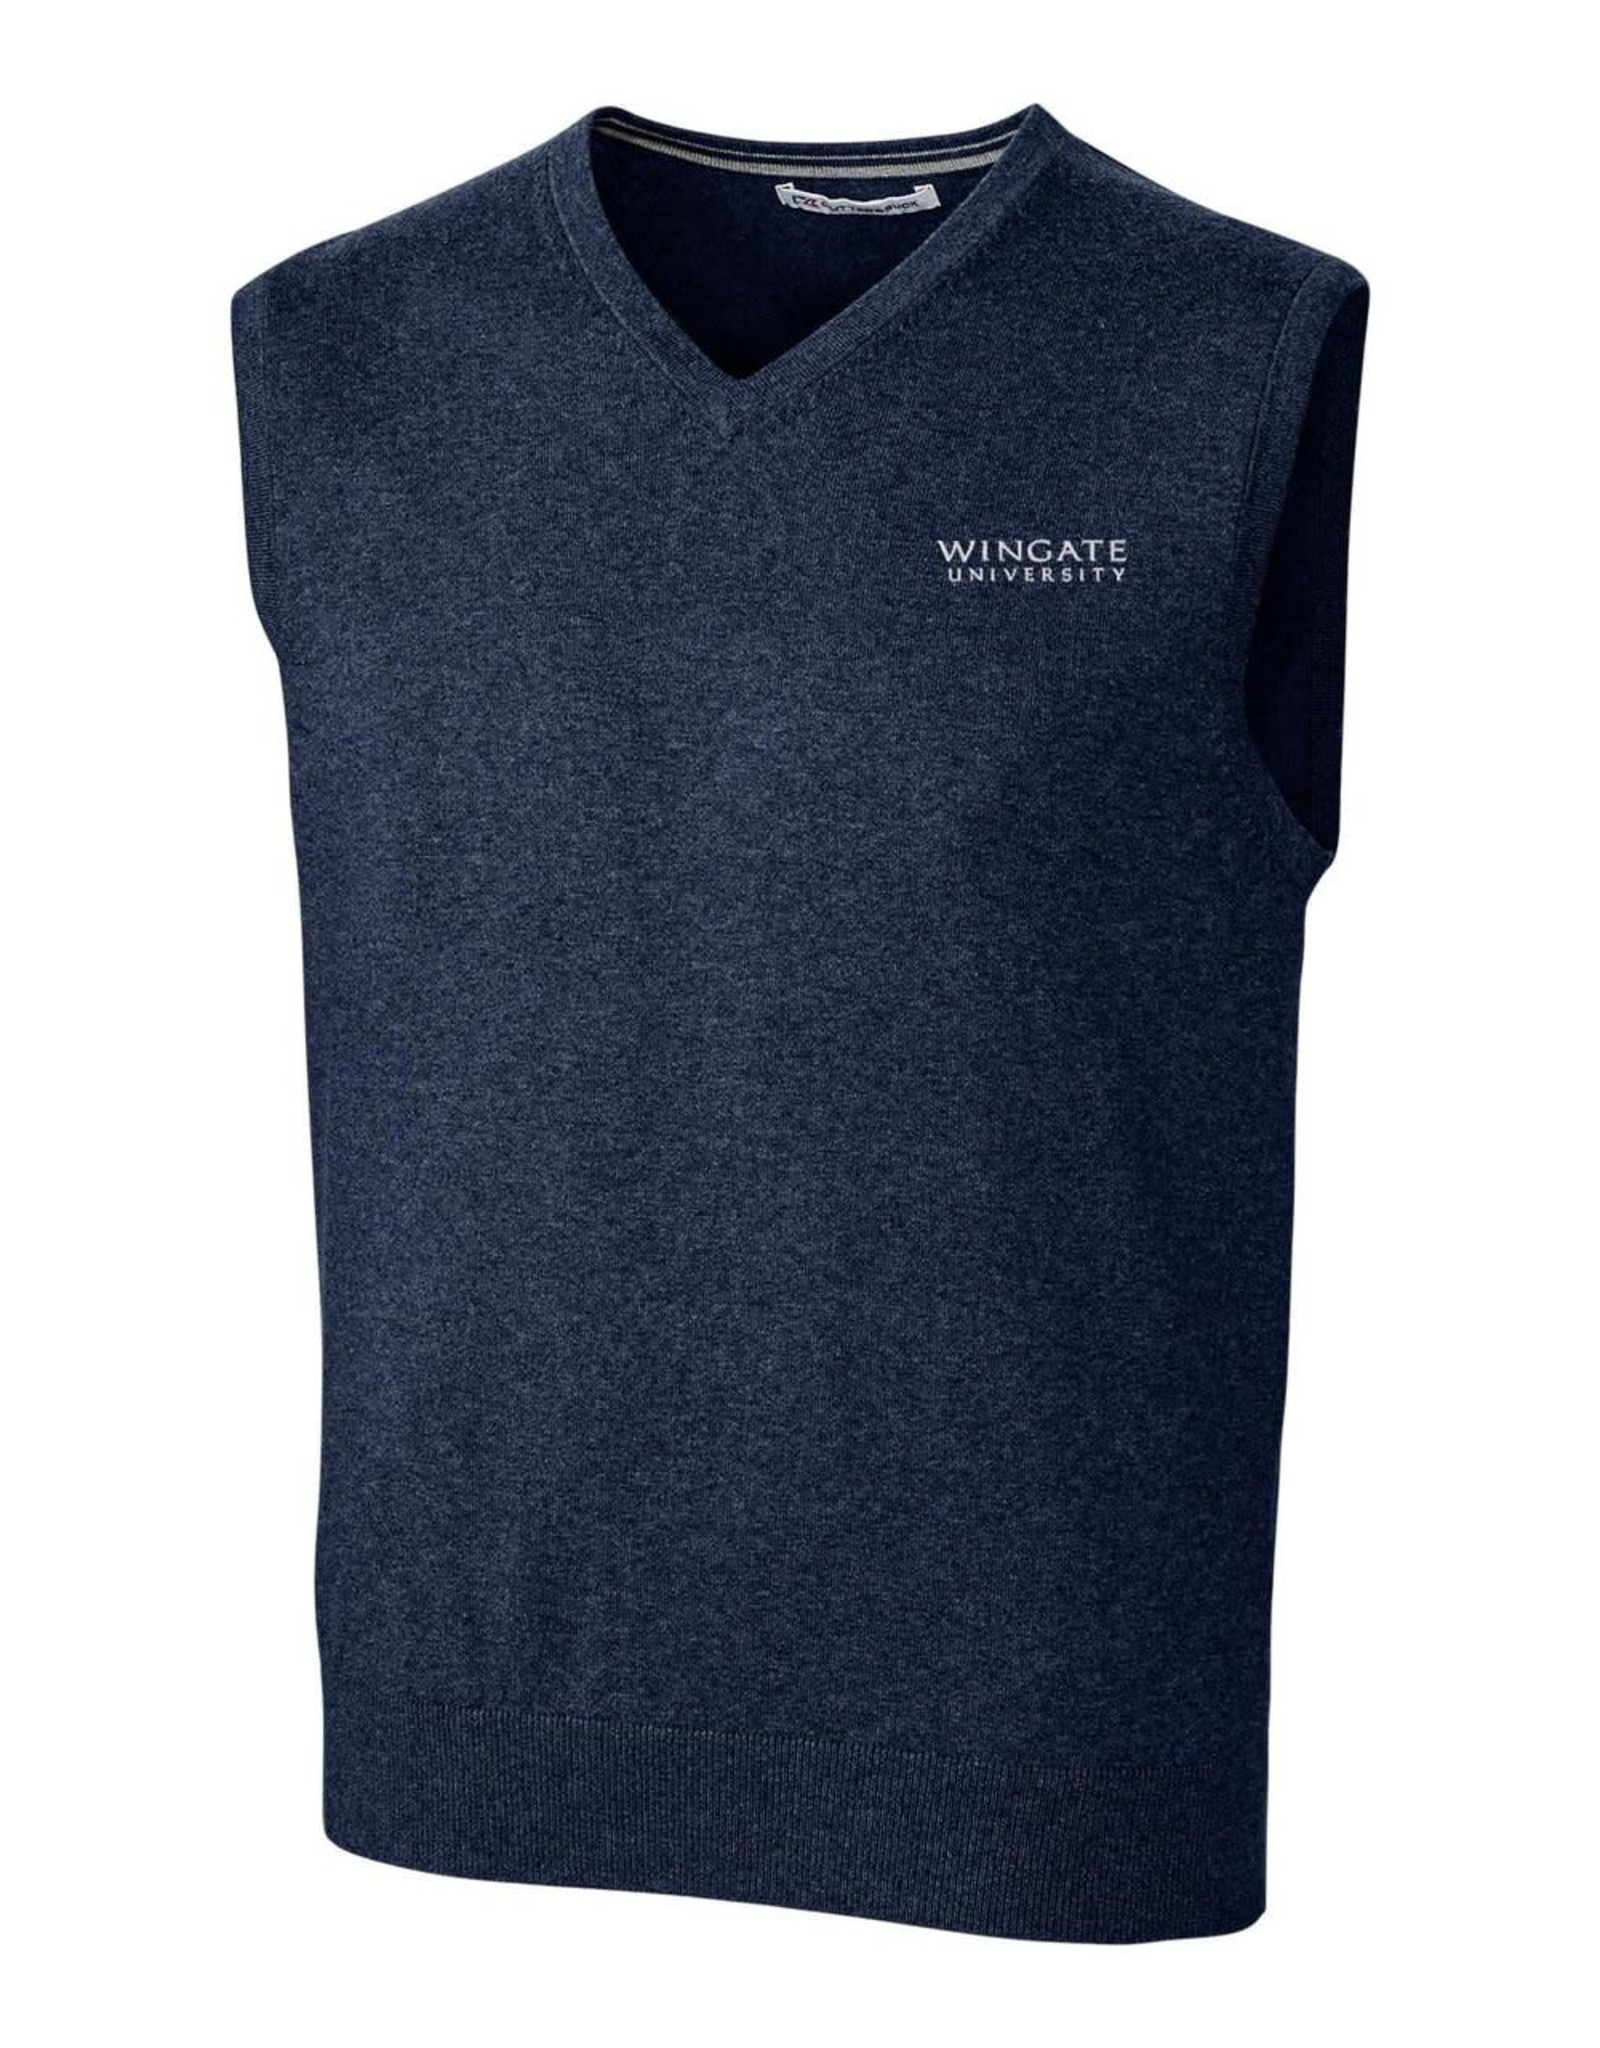 Navy Sweater Vest Wingate University